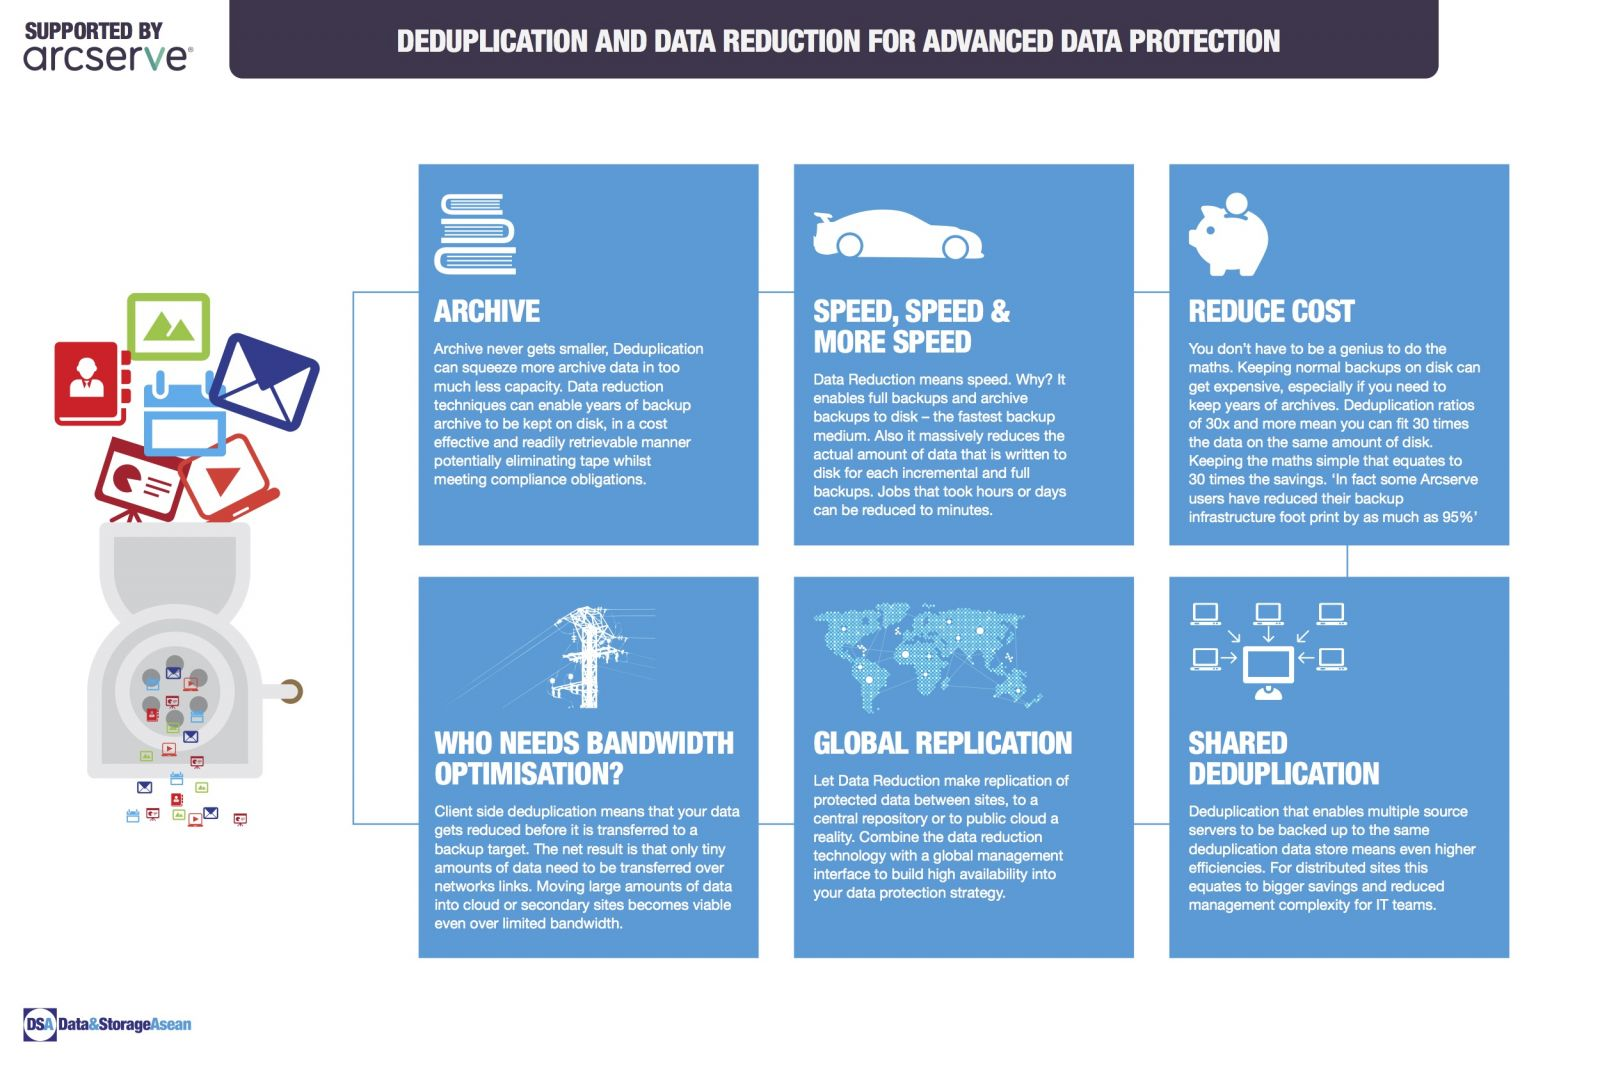 Deduplication and data reduction for advanced data protection supported by Arcserve.pdf